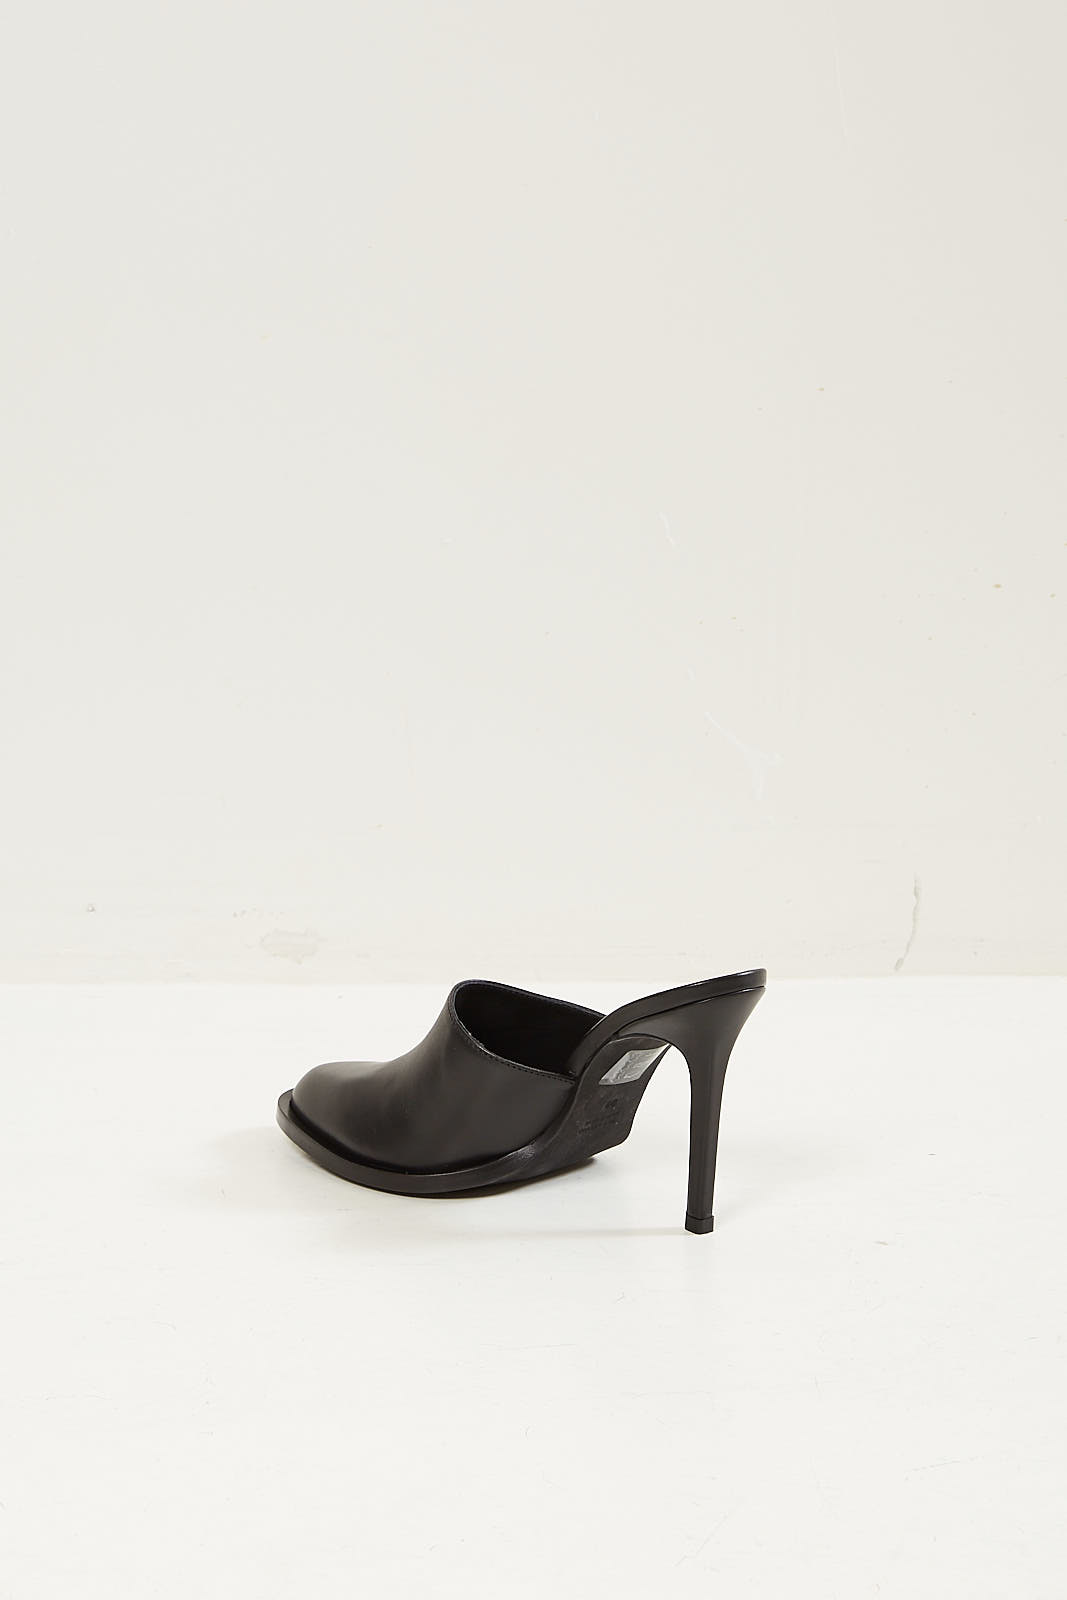 Ann Demeulemeester - 100% leather shoes